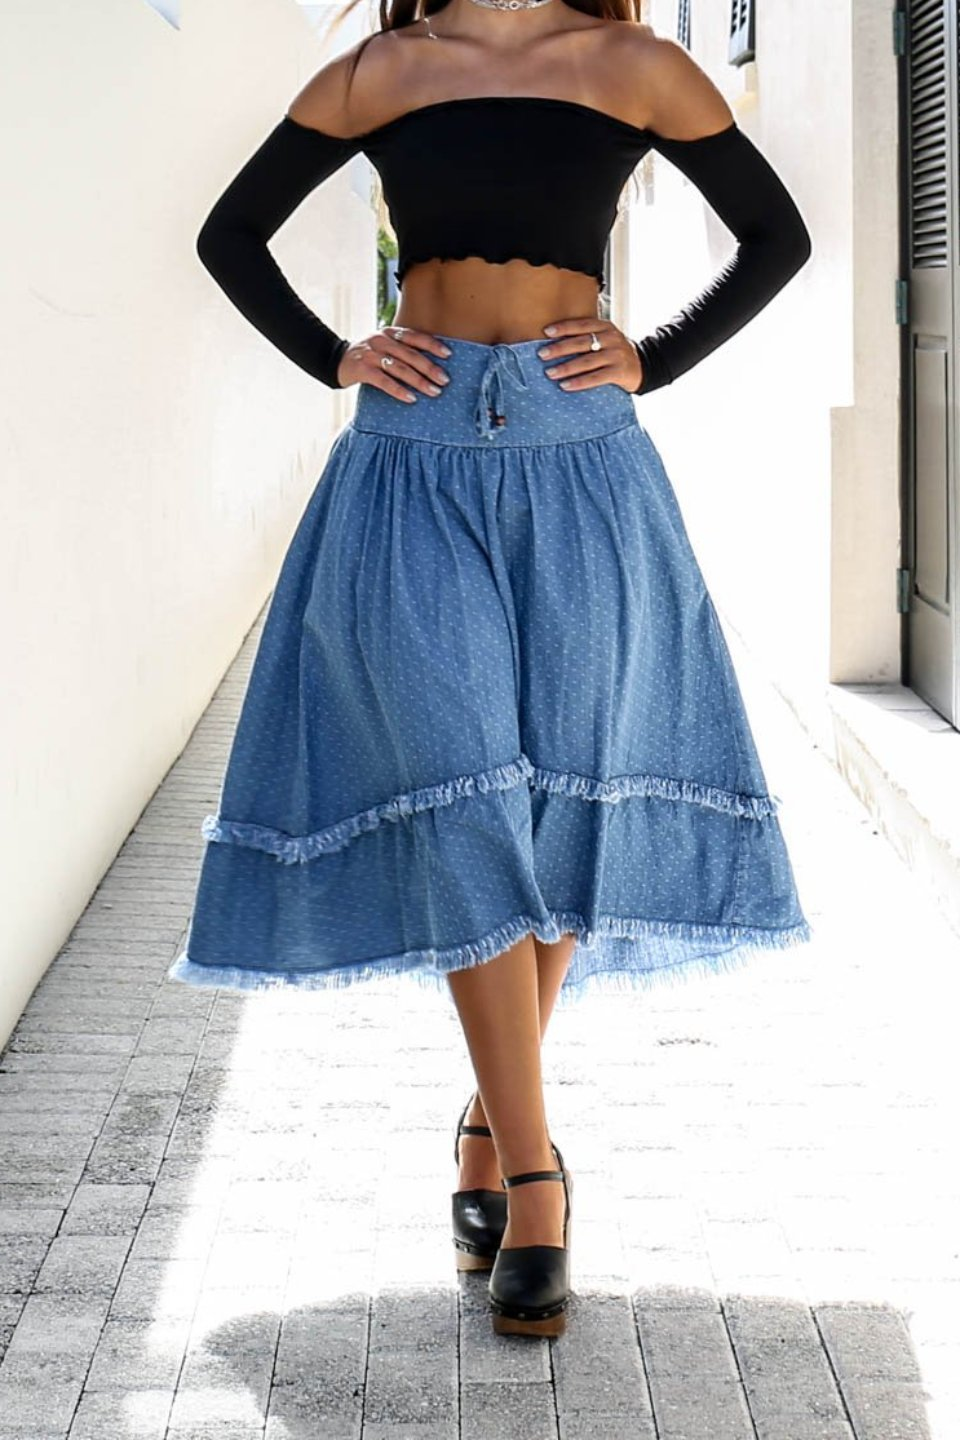 Delicate Love Denim Skirt - Amazing Lace